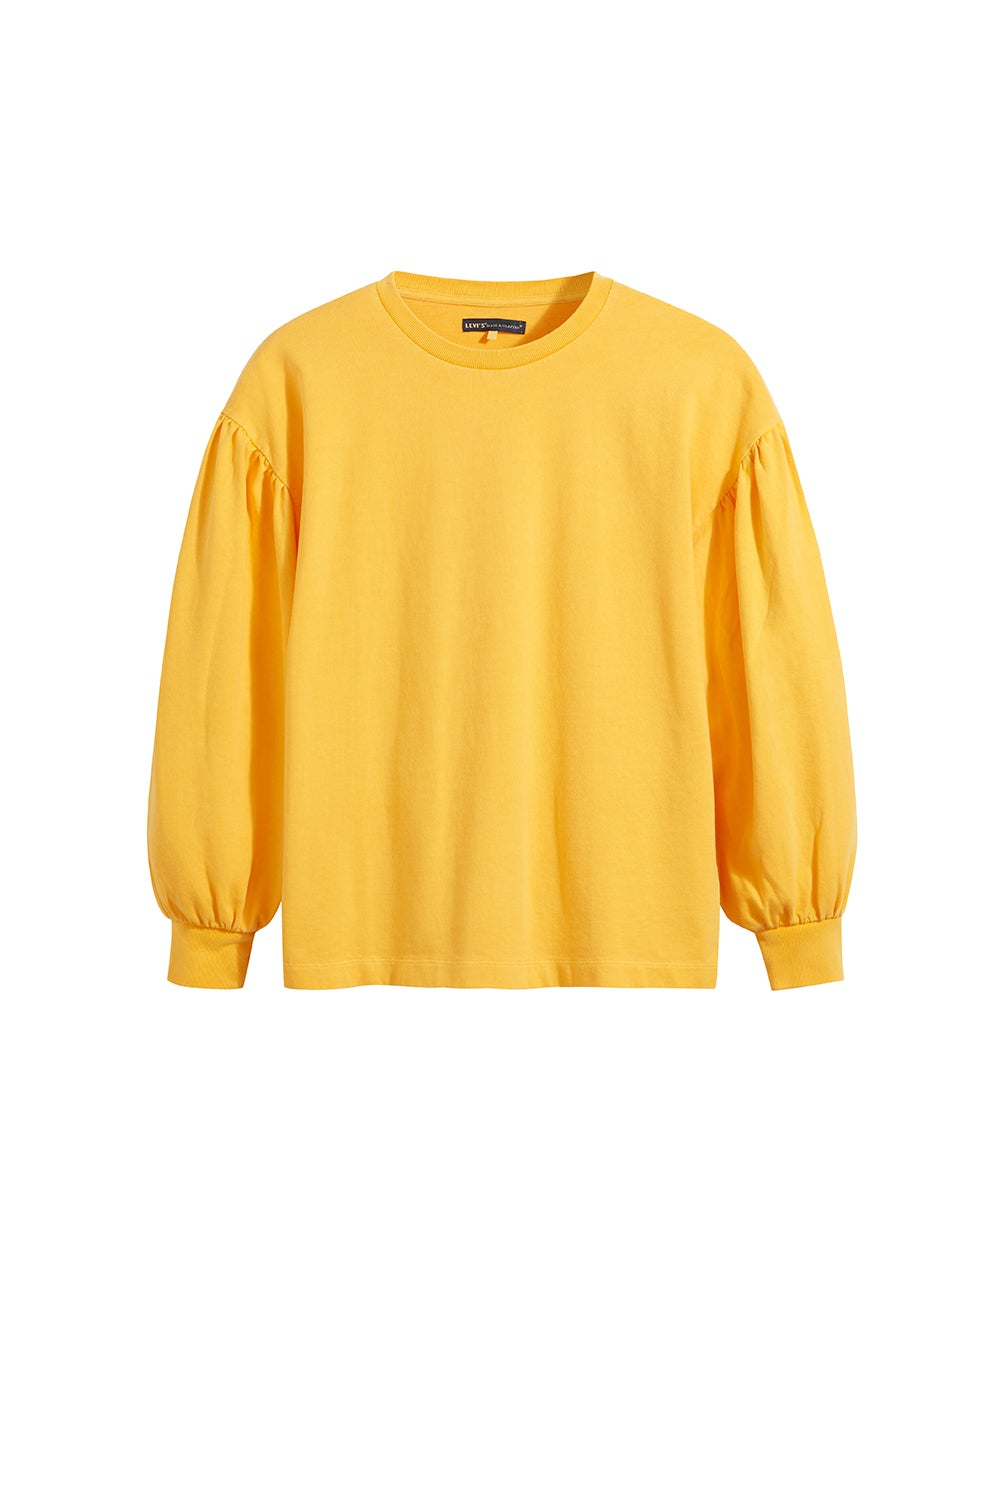 Levi's Made and Crafted Coat Tee Citrus